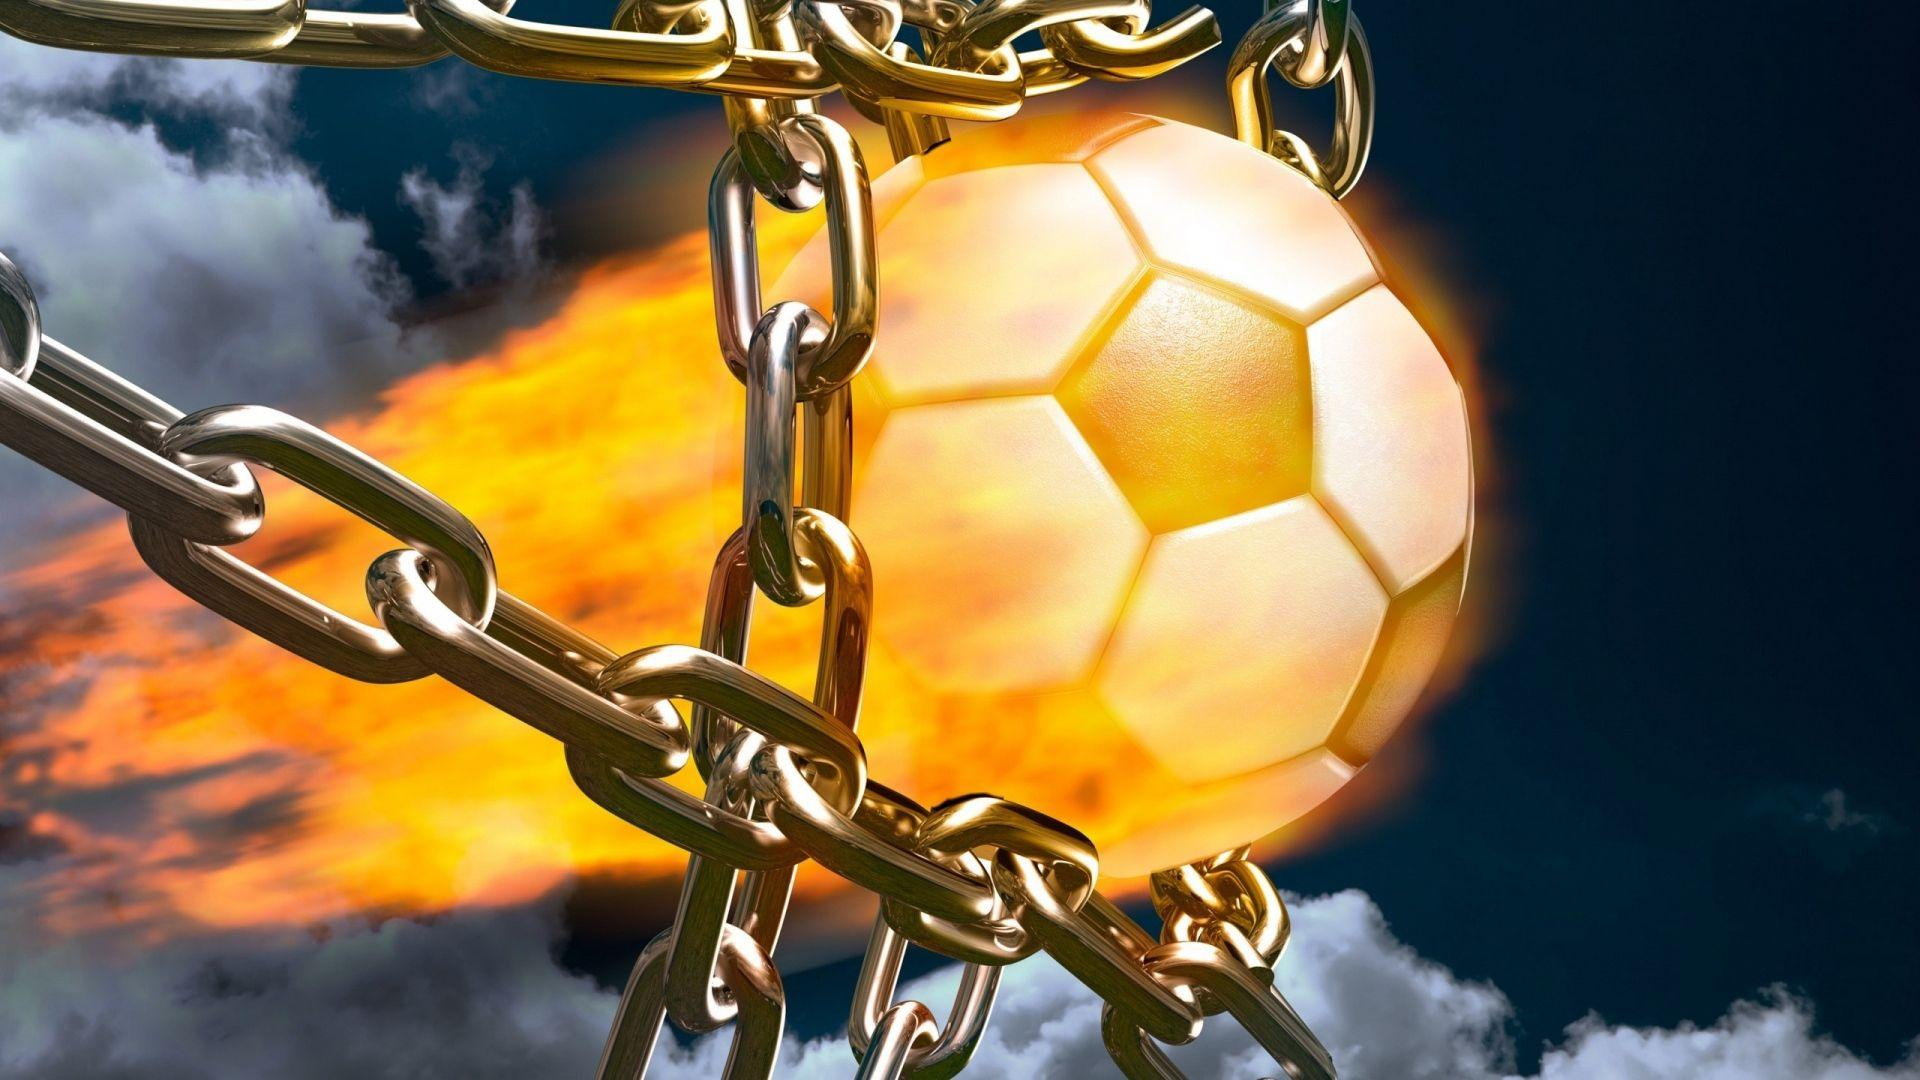 Download Wallpaper 1920x1080 football, fire, ball, goal, chains ...